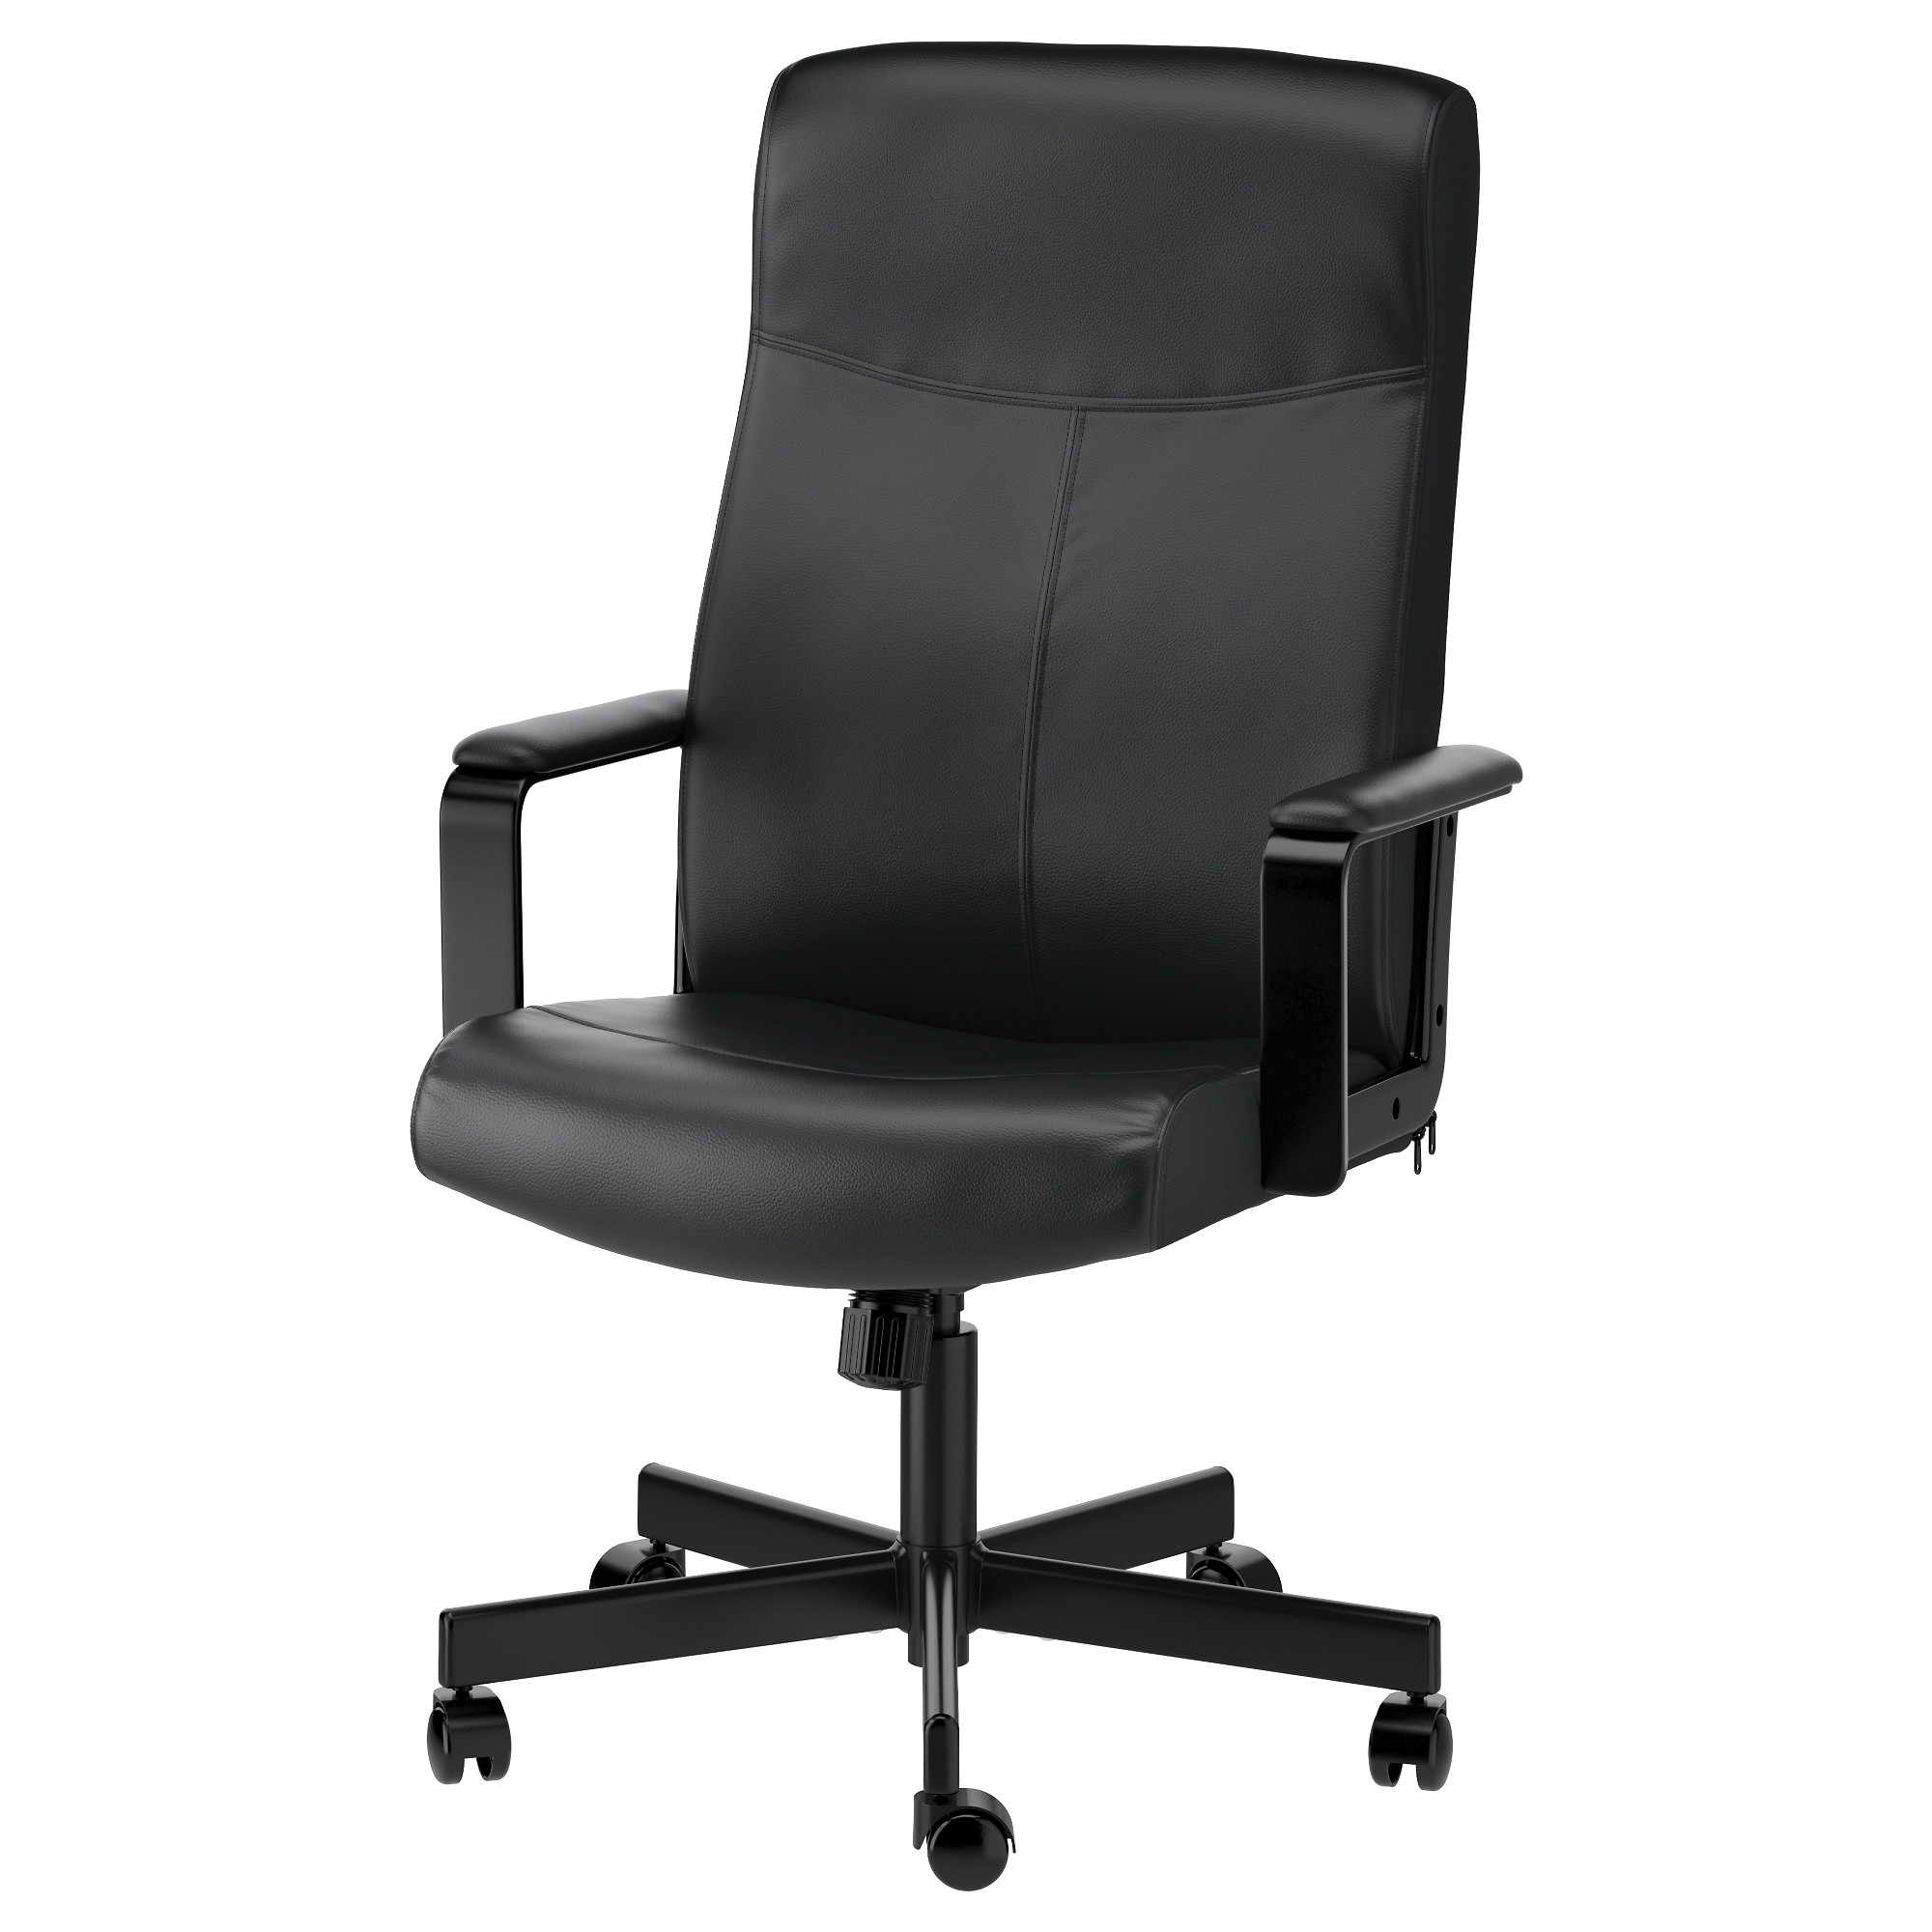 office chairs inter ikea systems b.v. 1999 - 2017 | privacy policy HXXFAHX